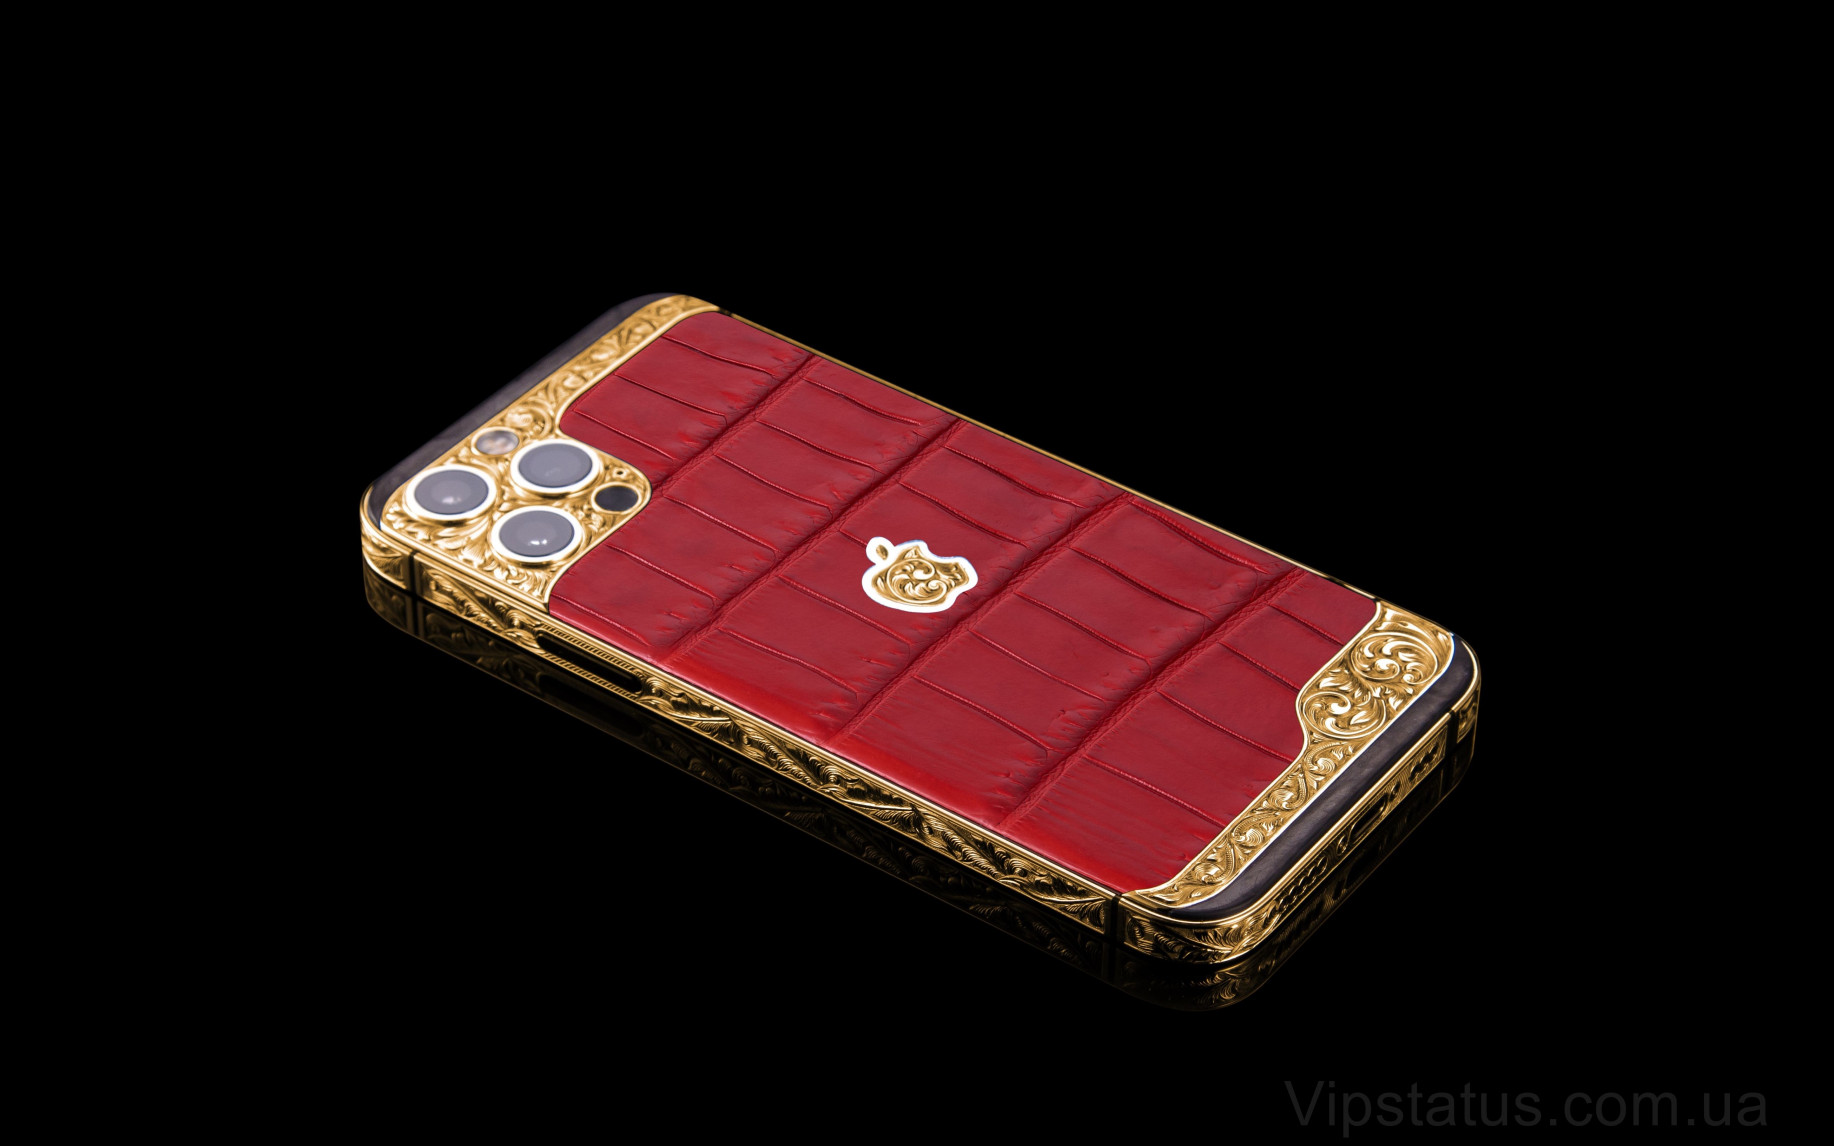 Elite Red Queen Edition IPHONE 12 PRO MAX 512 GB Red Queen Edition IPHONE 12 PRO MAX 512 GB image 3